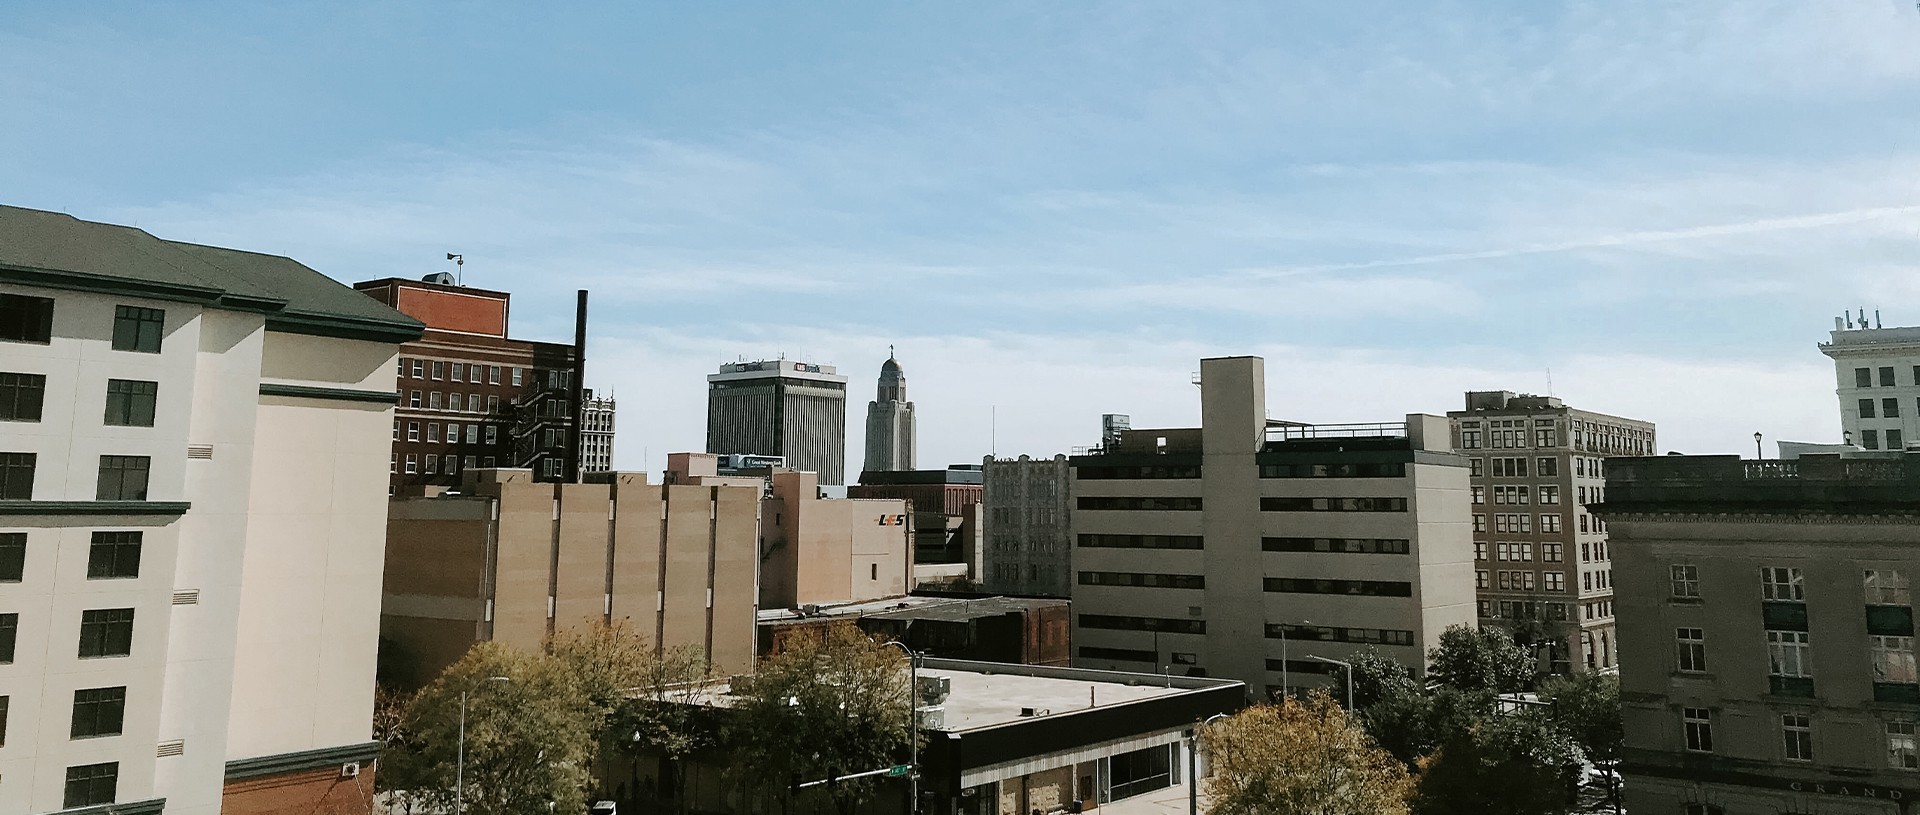 The Lincoln skyline with the state capitol in the distance on a sunny day